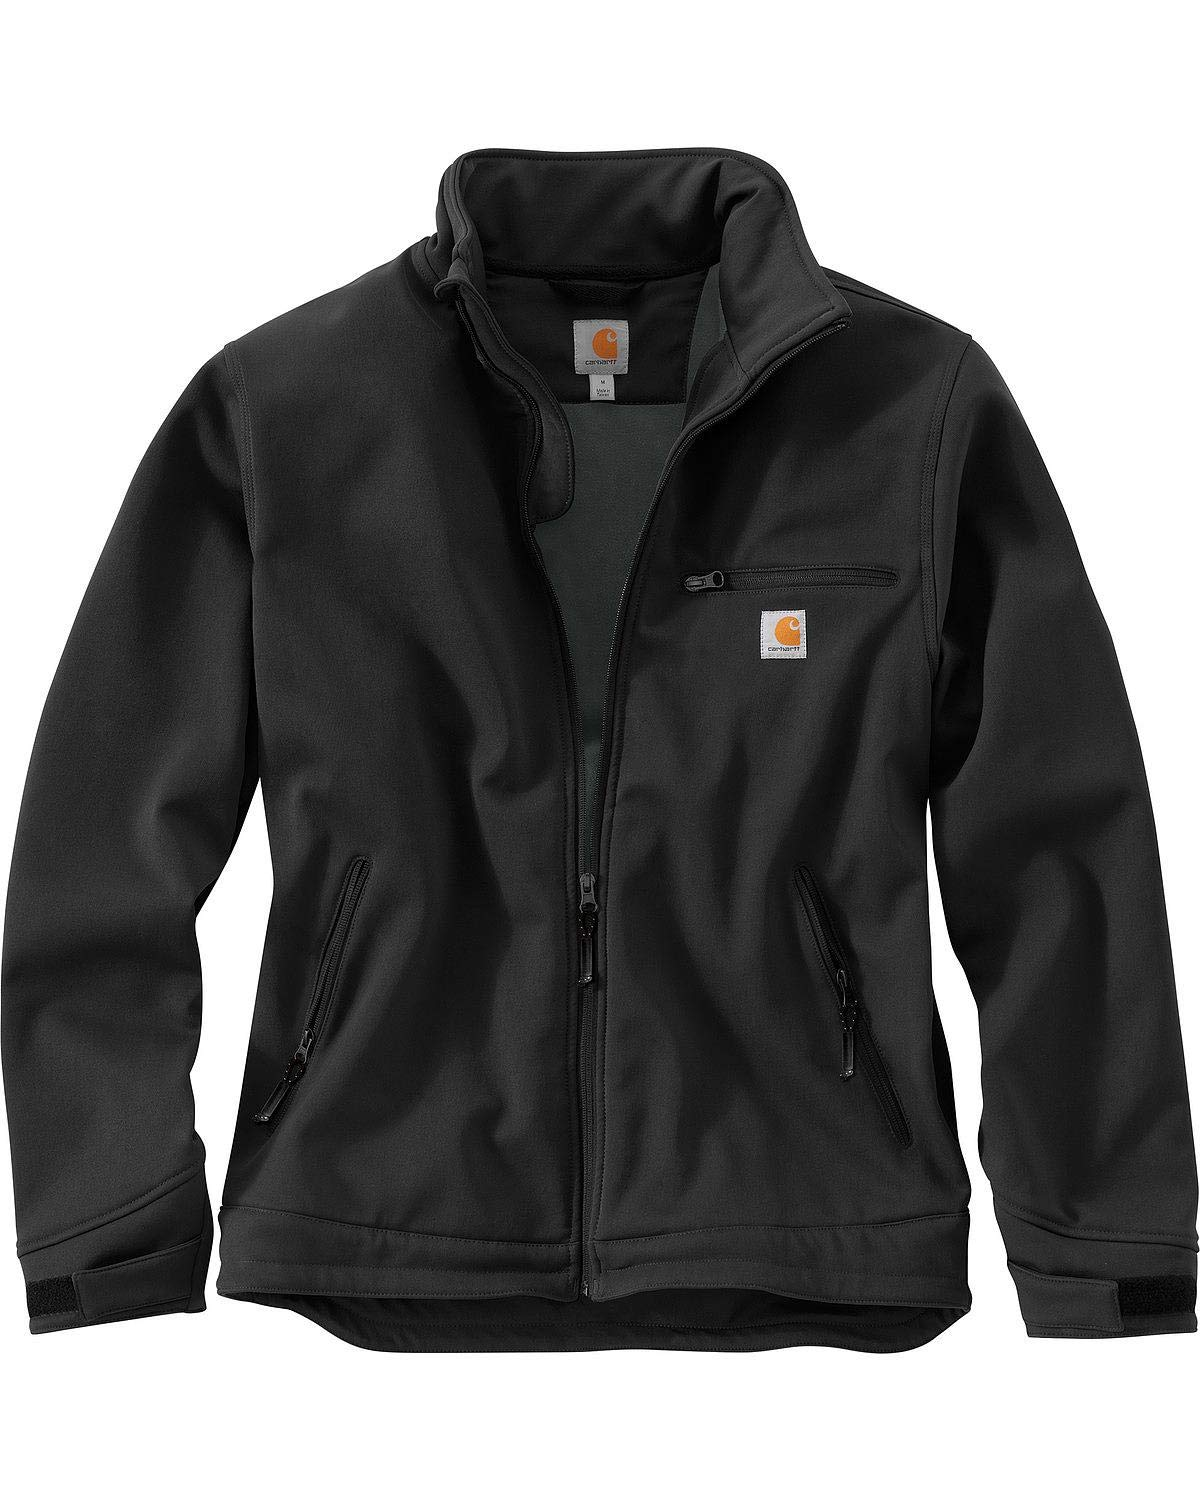 Carhartt Men's Crowley Jacket, Black, X-Large by Carhartt